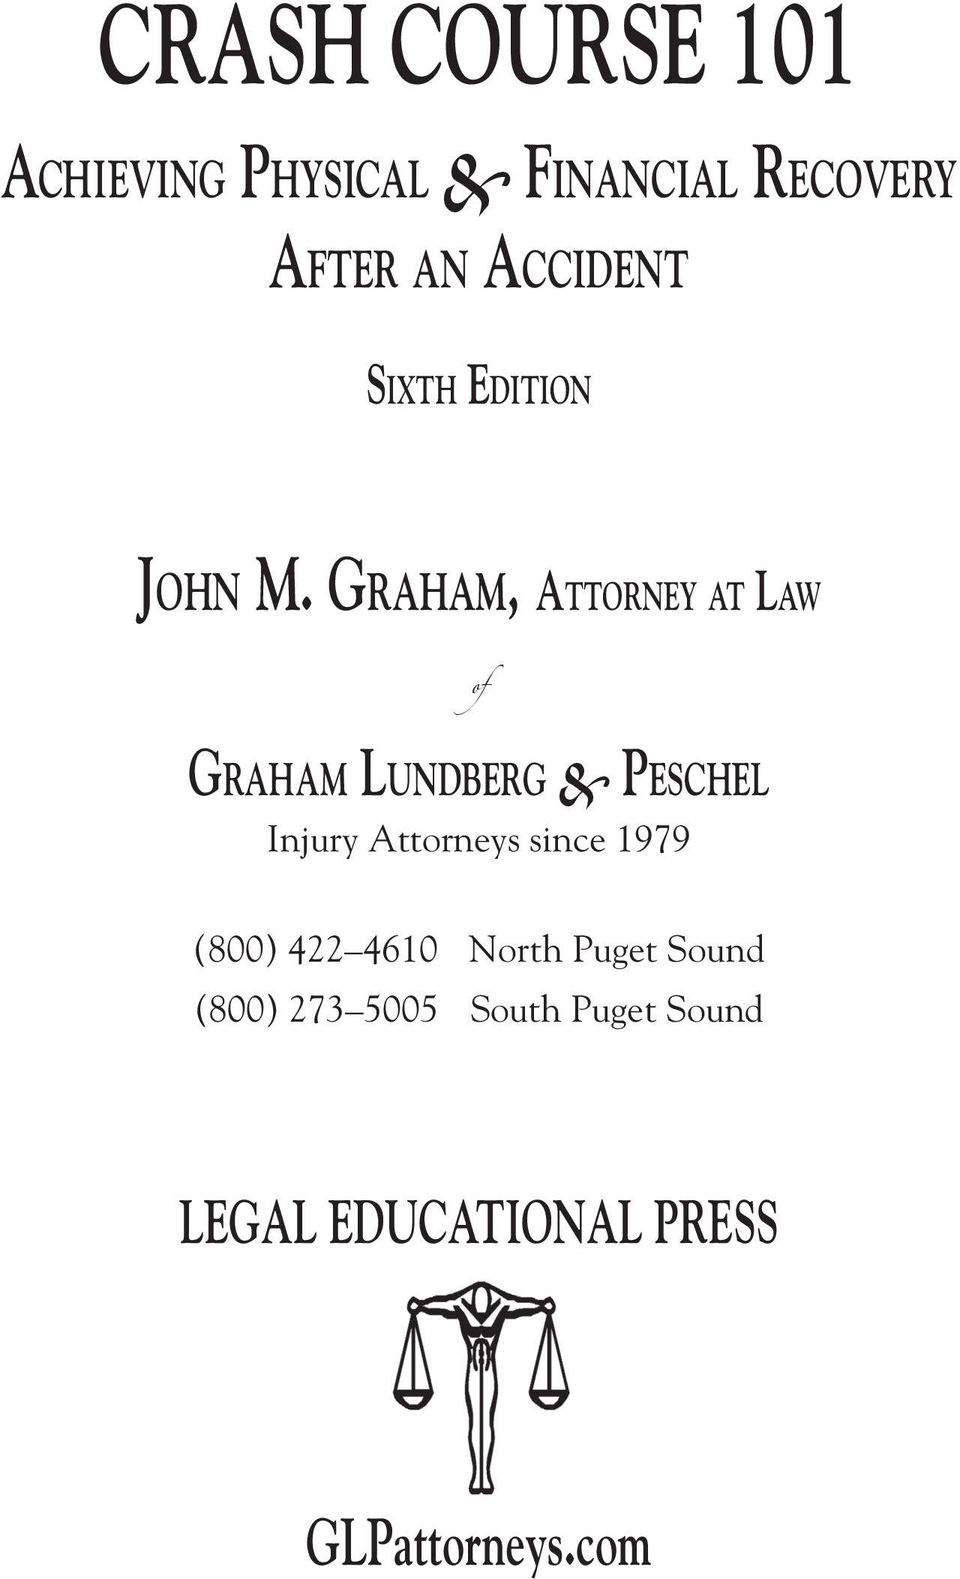 Graham, Attorney at Law of Graham Lundberg & Peschel Injury Attorneys